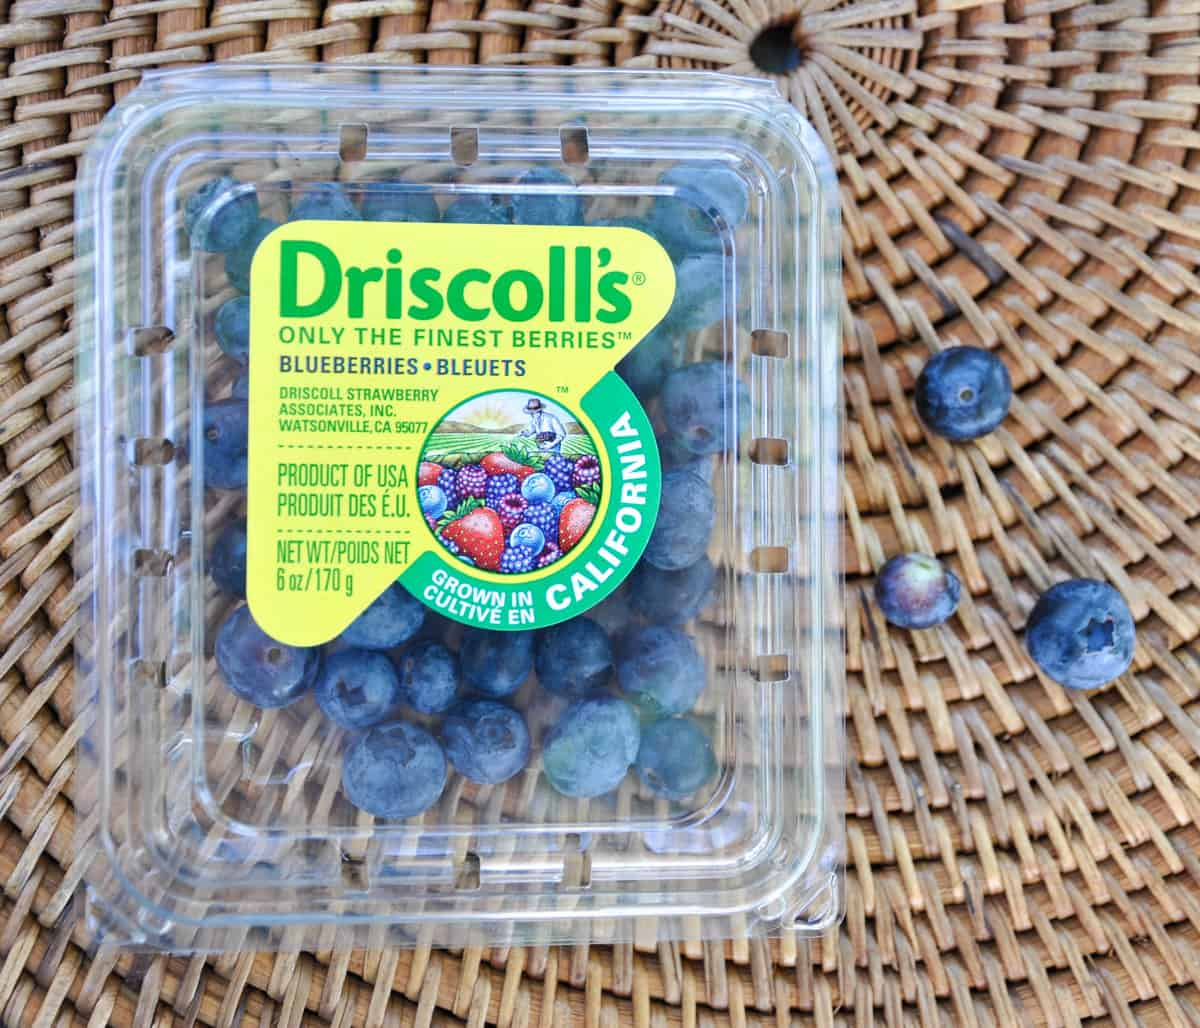 Driscoll's Blueberry Package